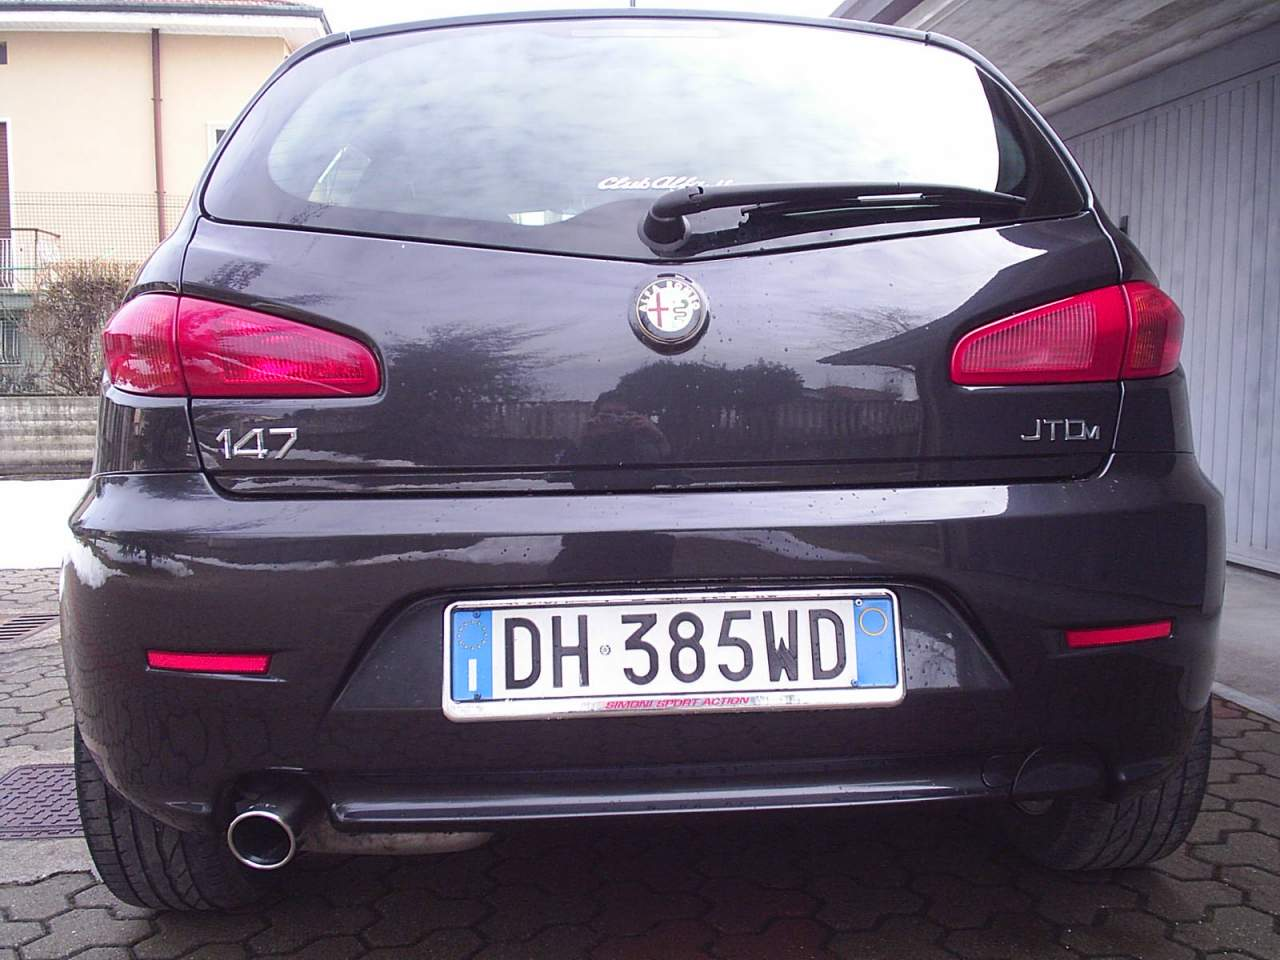 foto Alfa 147 - 1.9 jtdm Progression - 2008 - Gorla Magg (Va)- - {attachcounter}